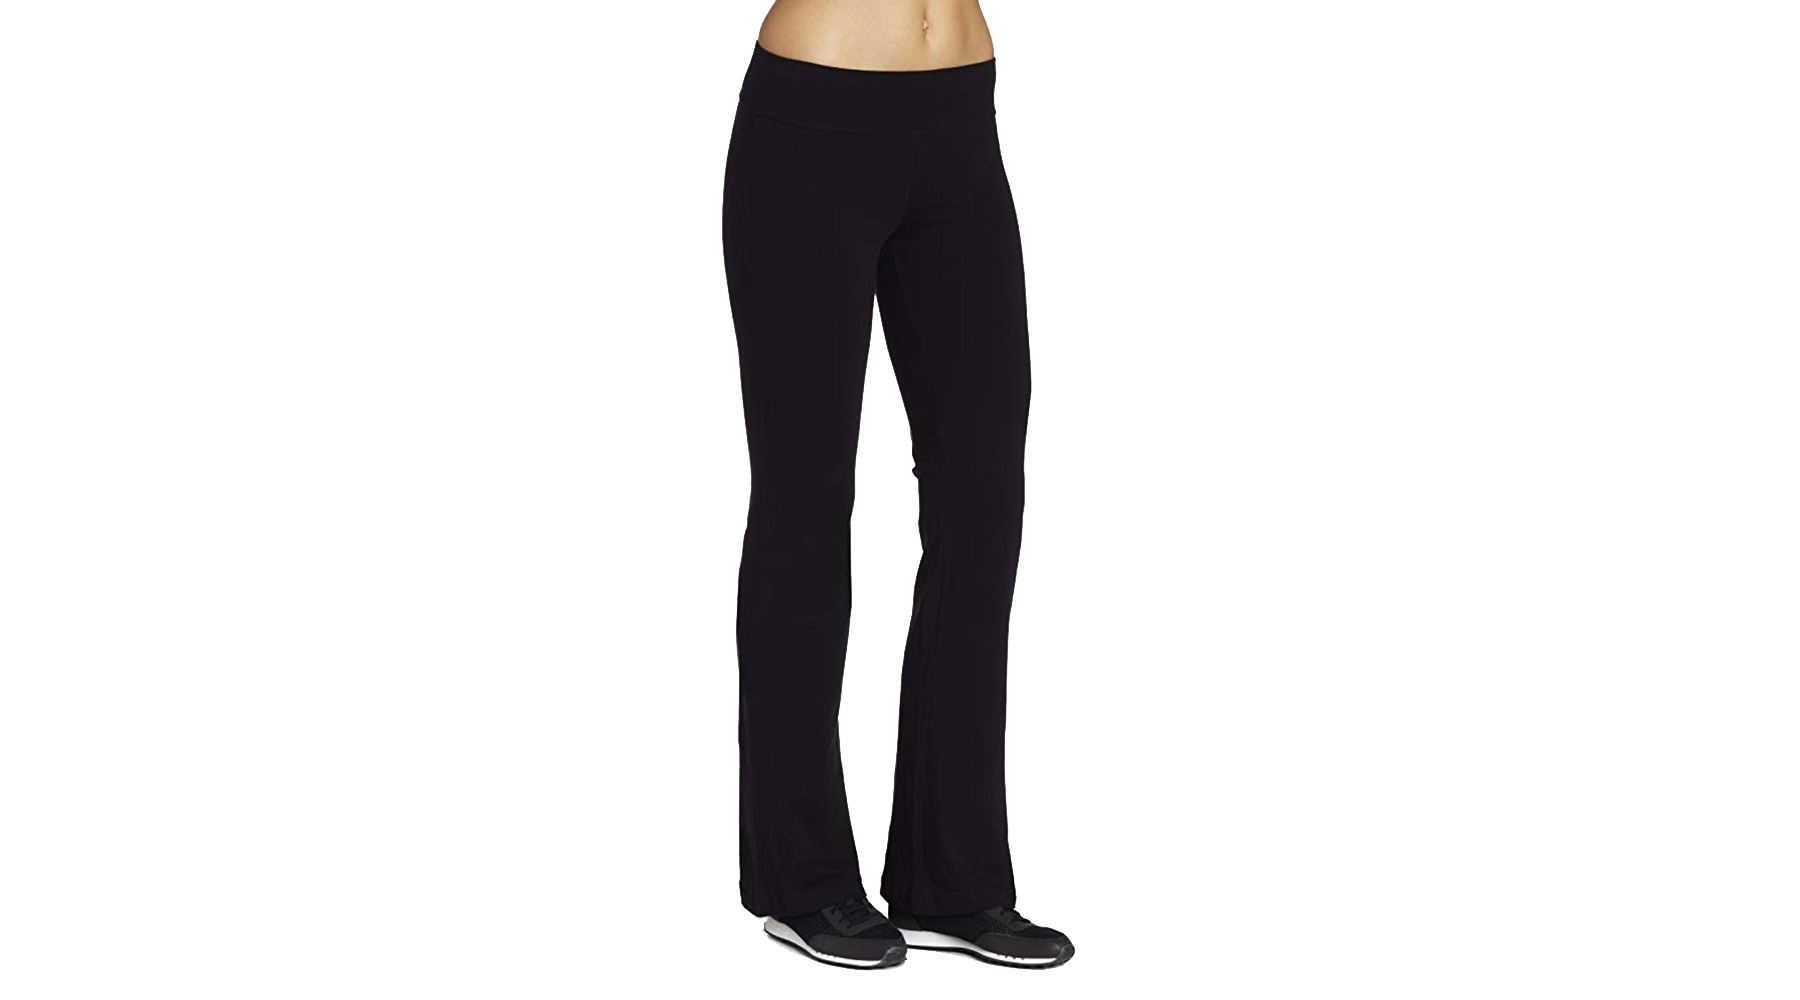 96a7ad3ea3d9d4 7 Best Yoga Pants on Amazon, According to Customers | Real Simple